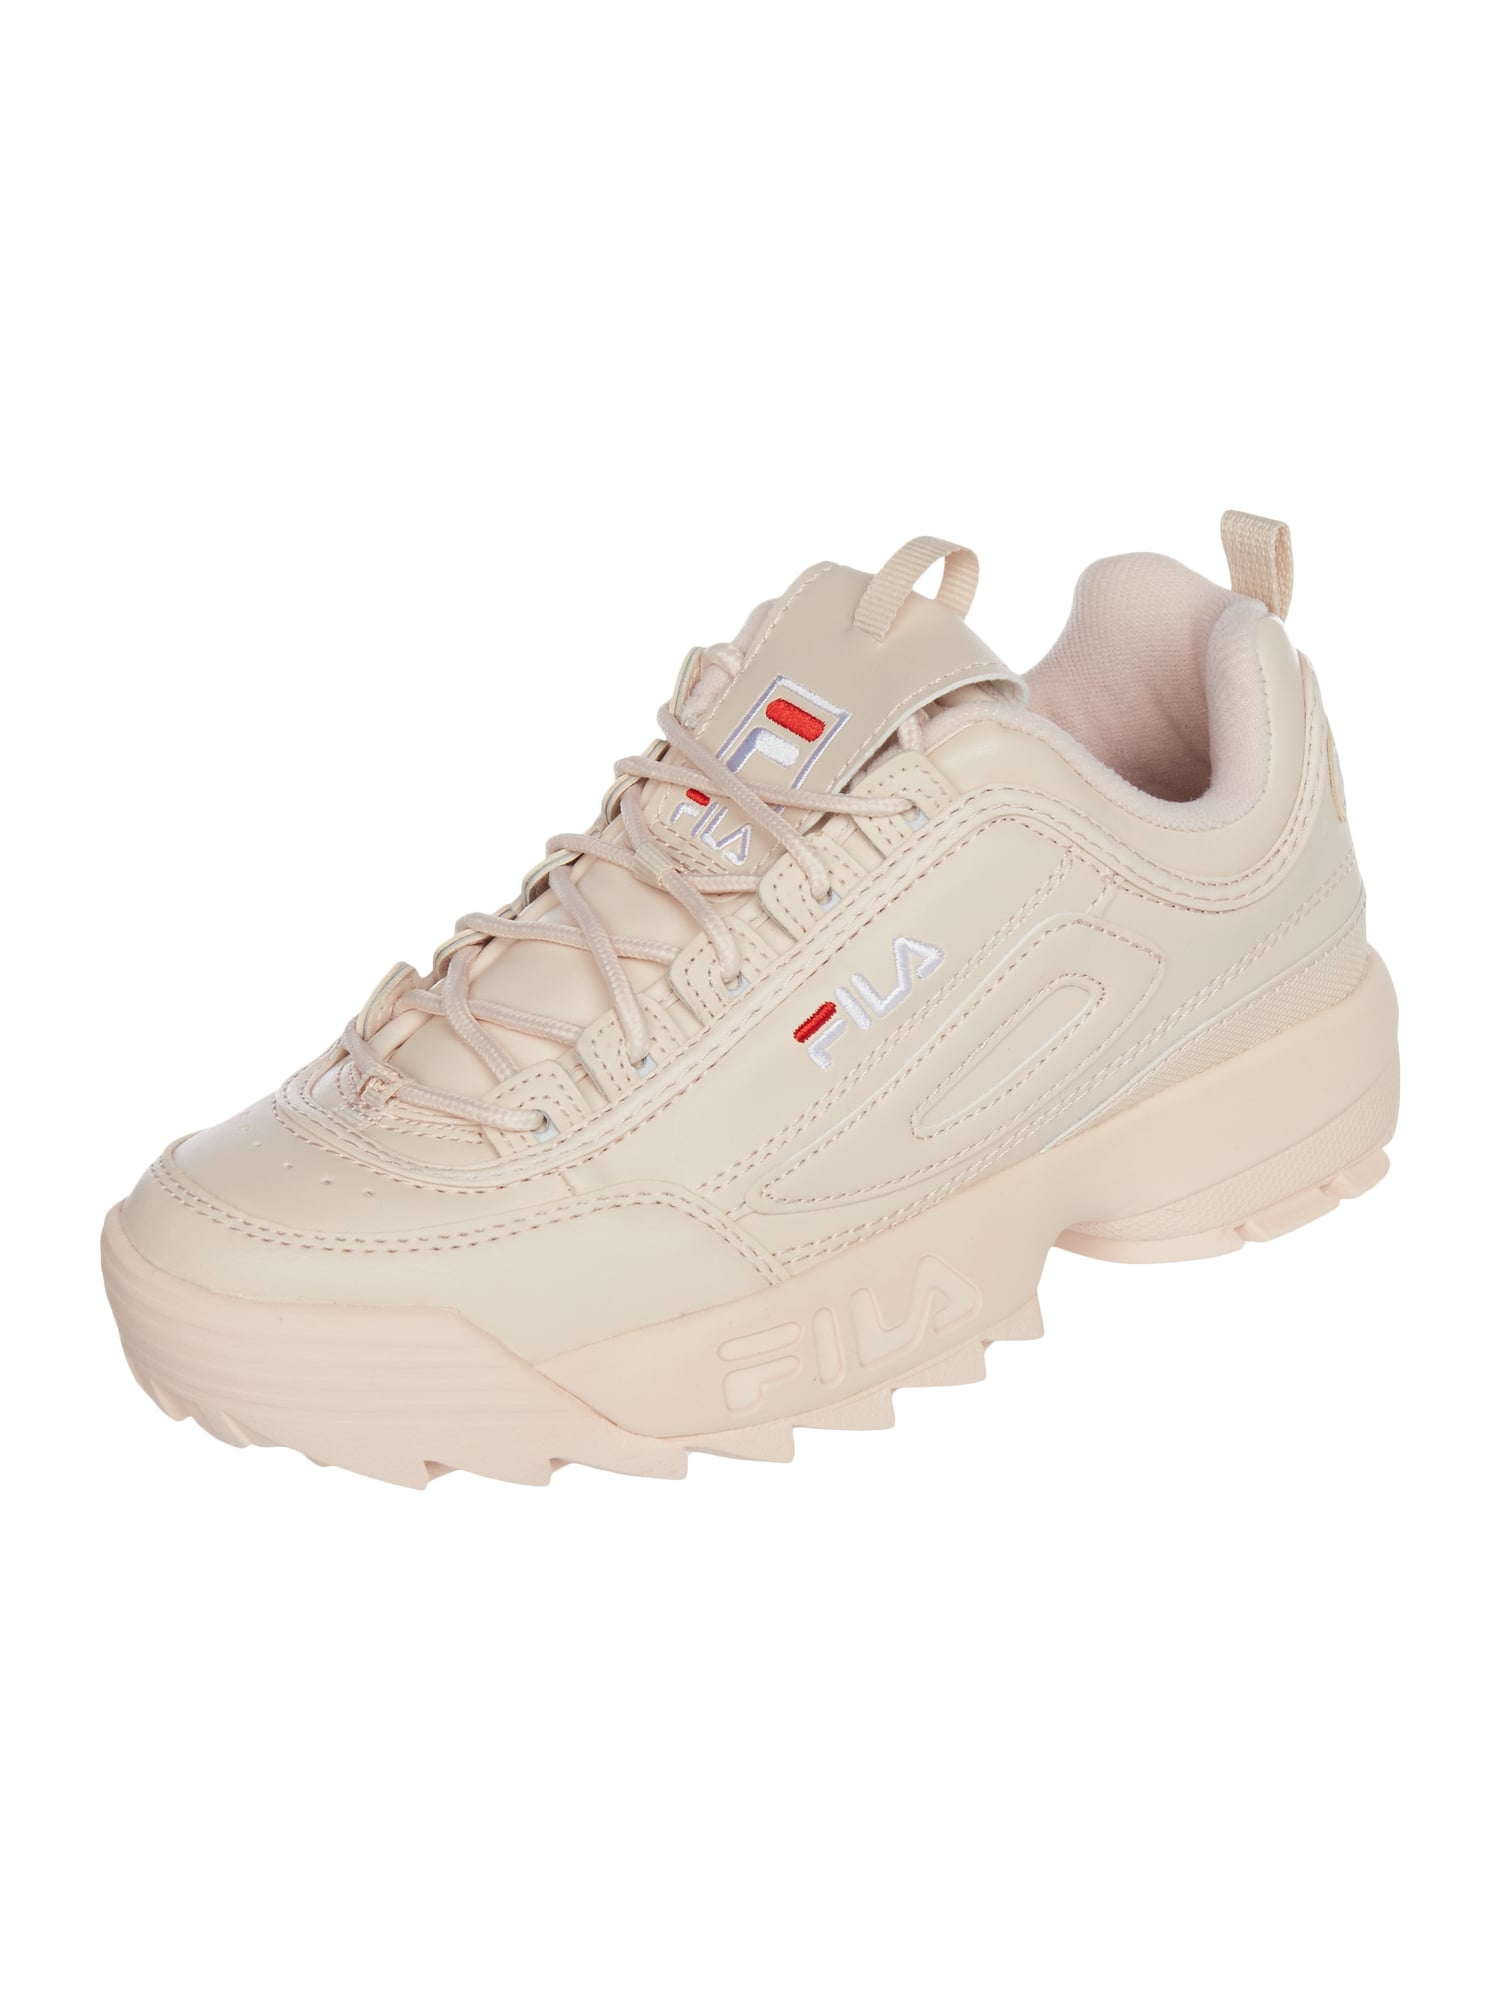 fila sneaker 39 disruptor low 39 mit schn rverschluss in ros online kaufen 9789022 p c online. Black Bedroom Furniture Sets. Home Design Ideas